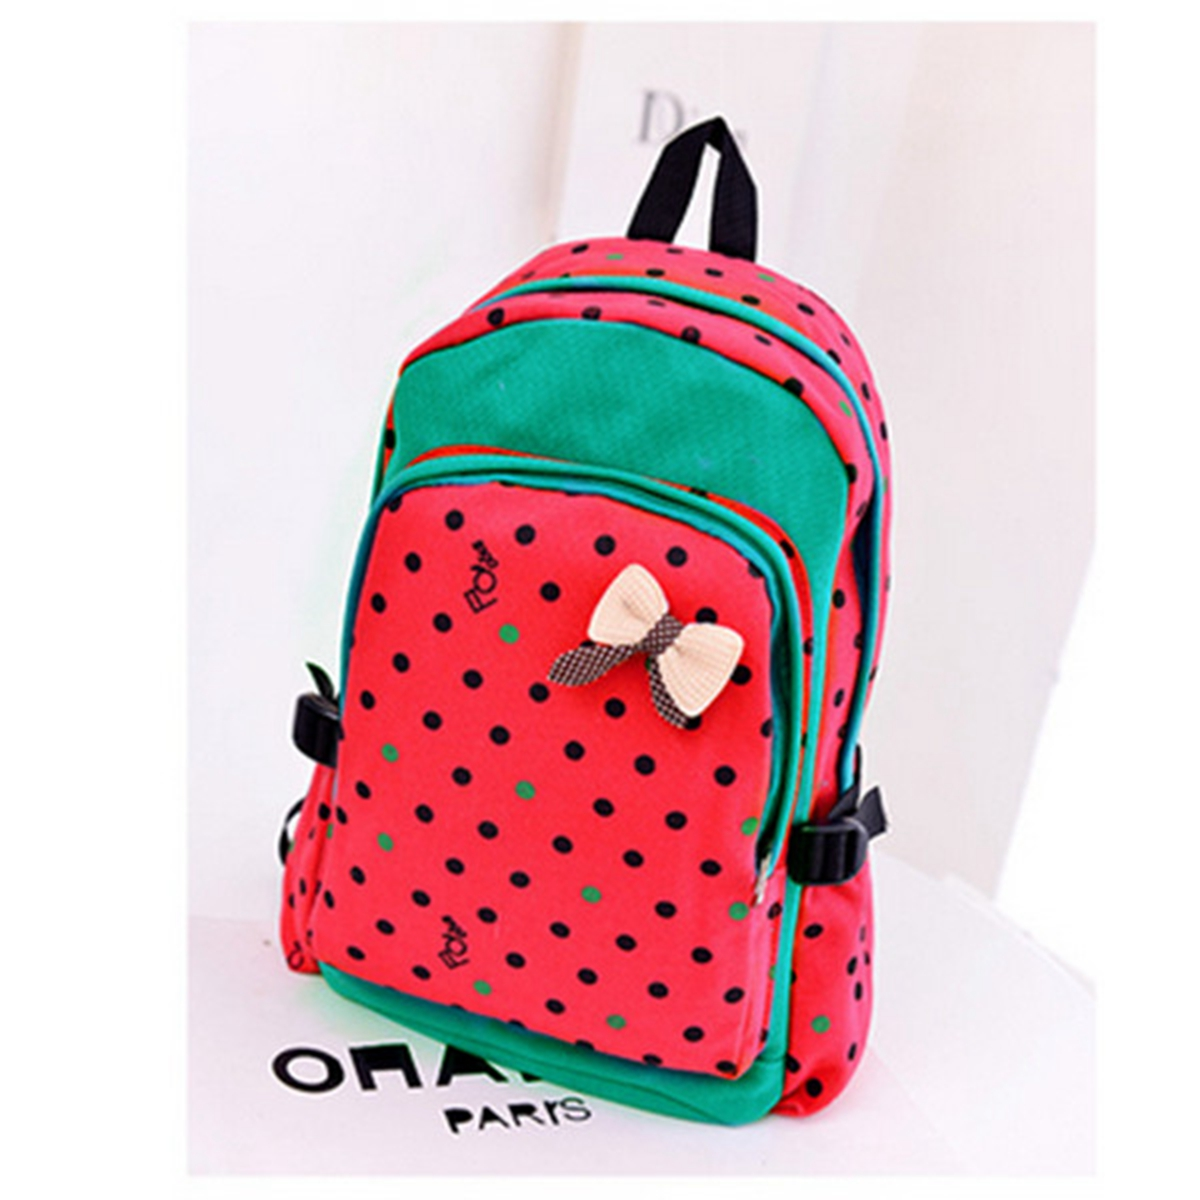 Womens Backpacks In a fantastic array of colours, designs and purposes, our range of backpacks are ideal for every kind of dresser. The streetwear aficionados in our midst will love our urban brands, whilst those that pursue their love of the outdoors will find much use in functional, sport specific options.